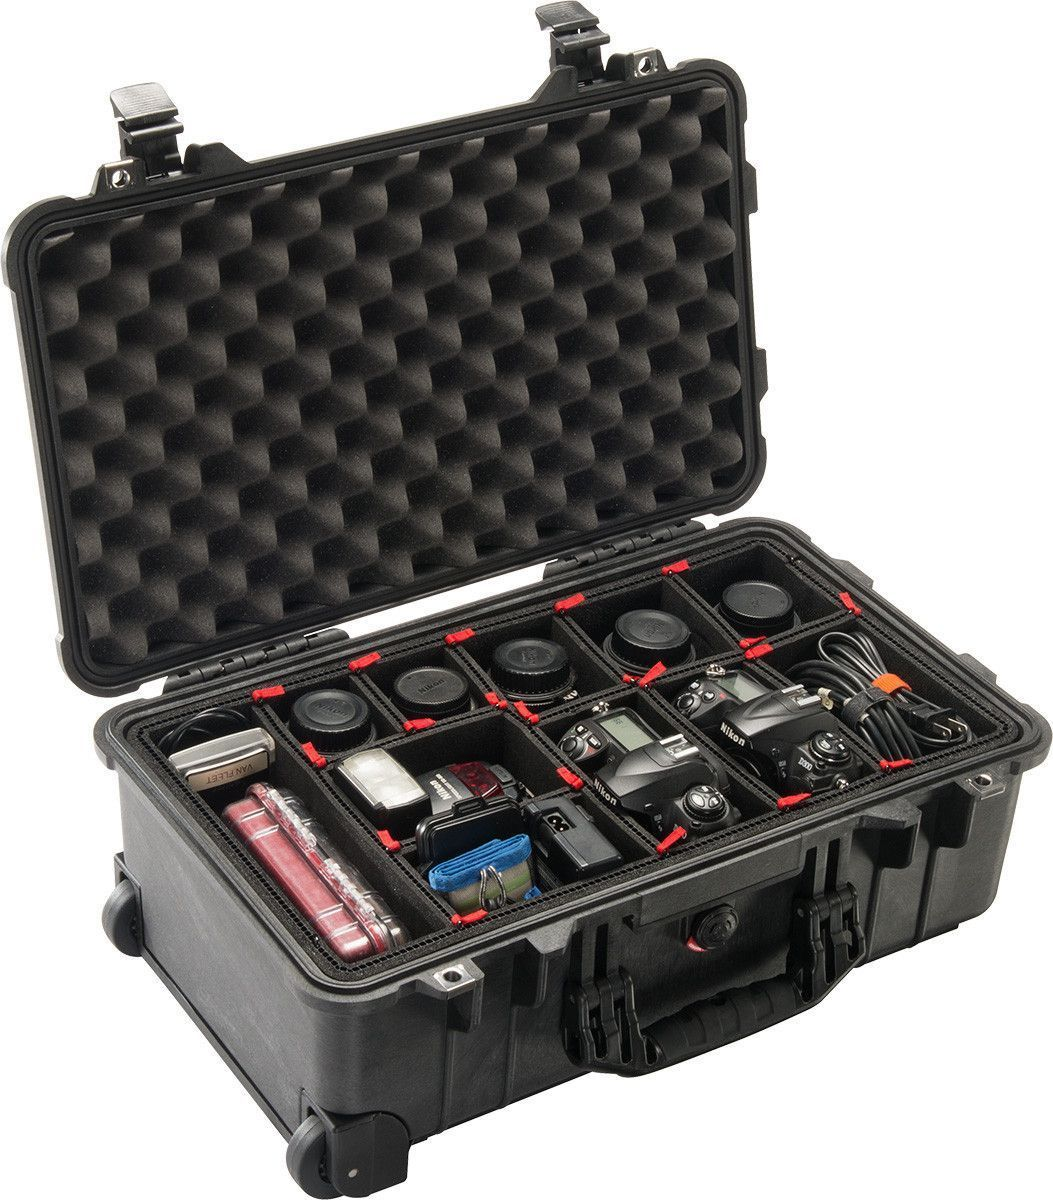 TrekPak Foam Insert for Pelican 1500 Cases